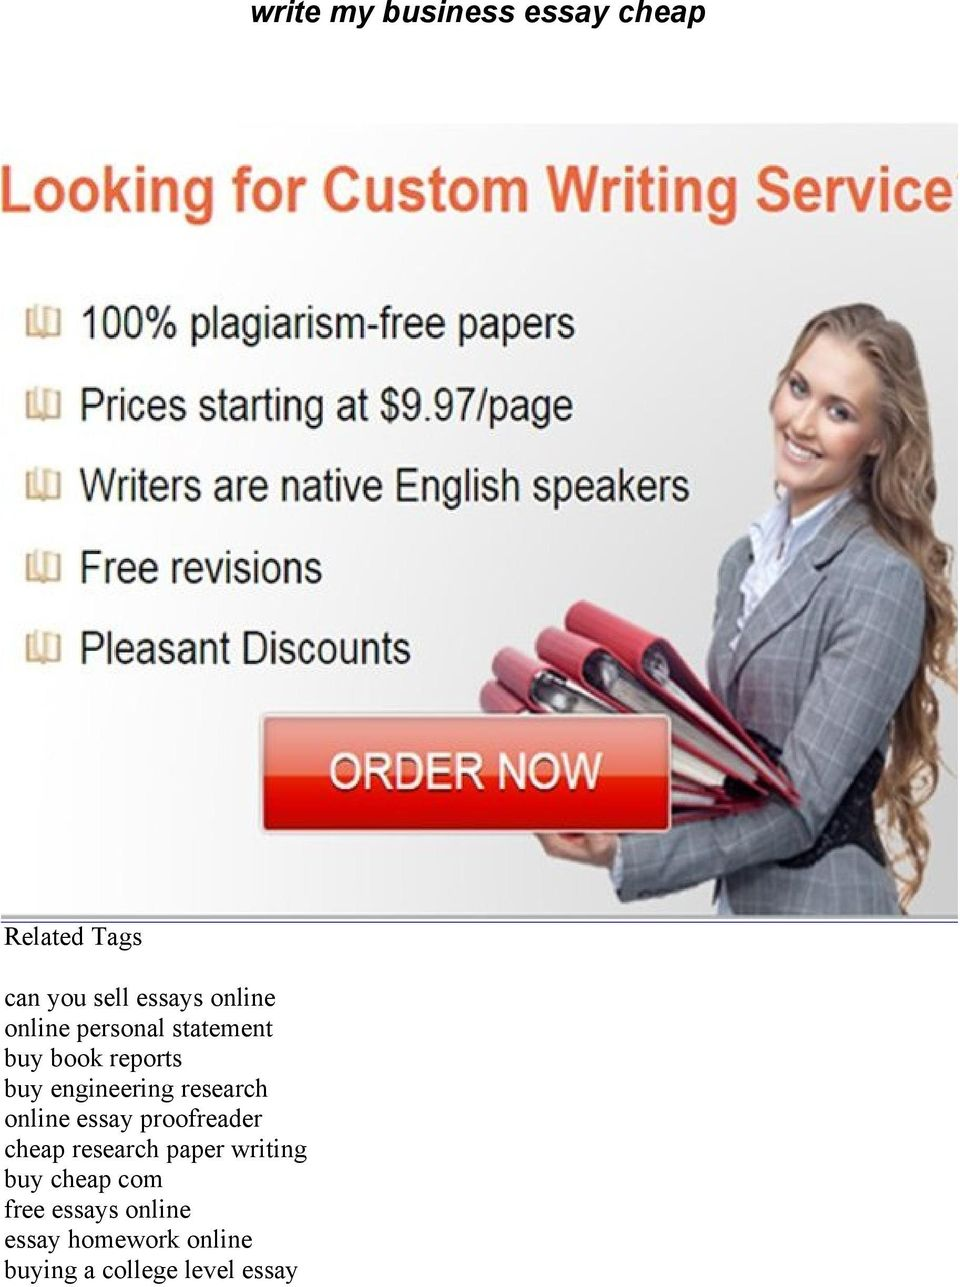 research online essay proofreader cheap research paper writing buy